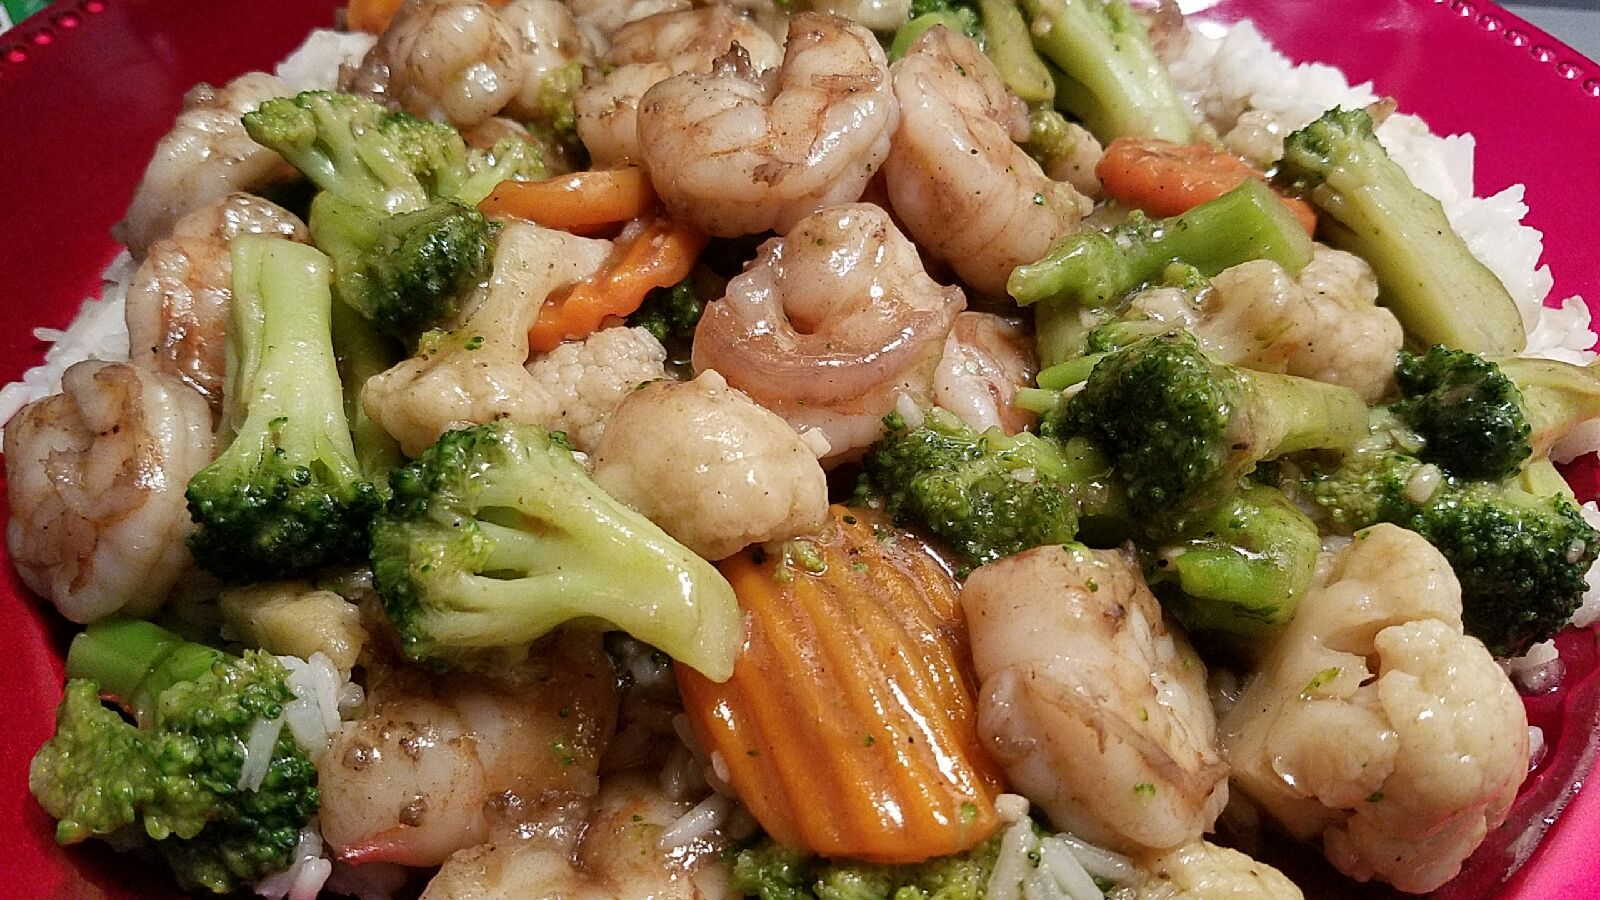 Easy summer stir fry .  Shrimp & veggie blend w/ ground ginger & minced garlic sauce.  The veggie blend are carrots, cauliflower & broccoli.  ; -  )